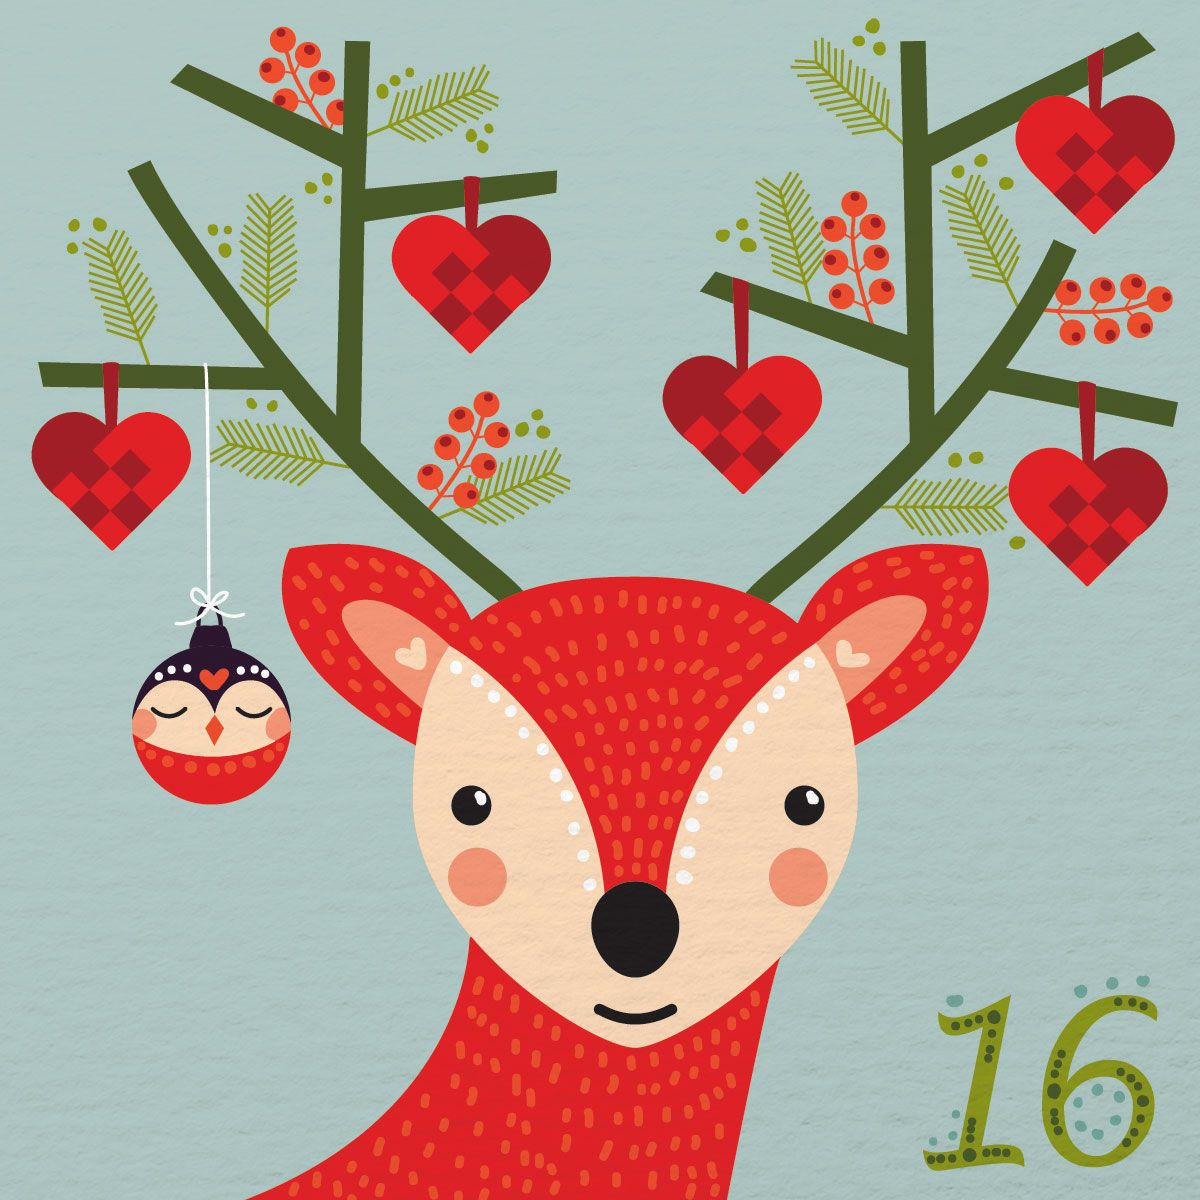 Christmas Calendar Illustration : Advent illustration day caroline alfreds by